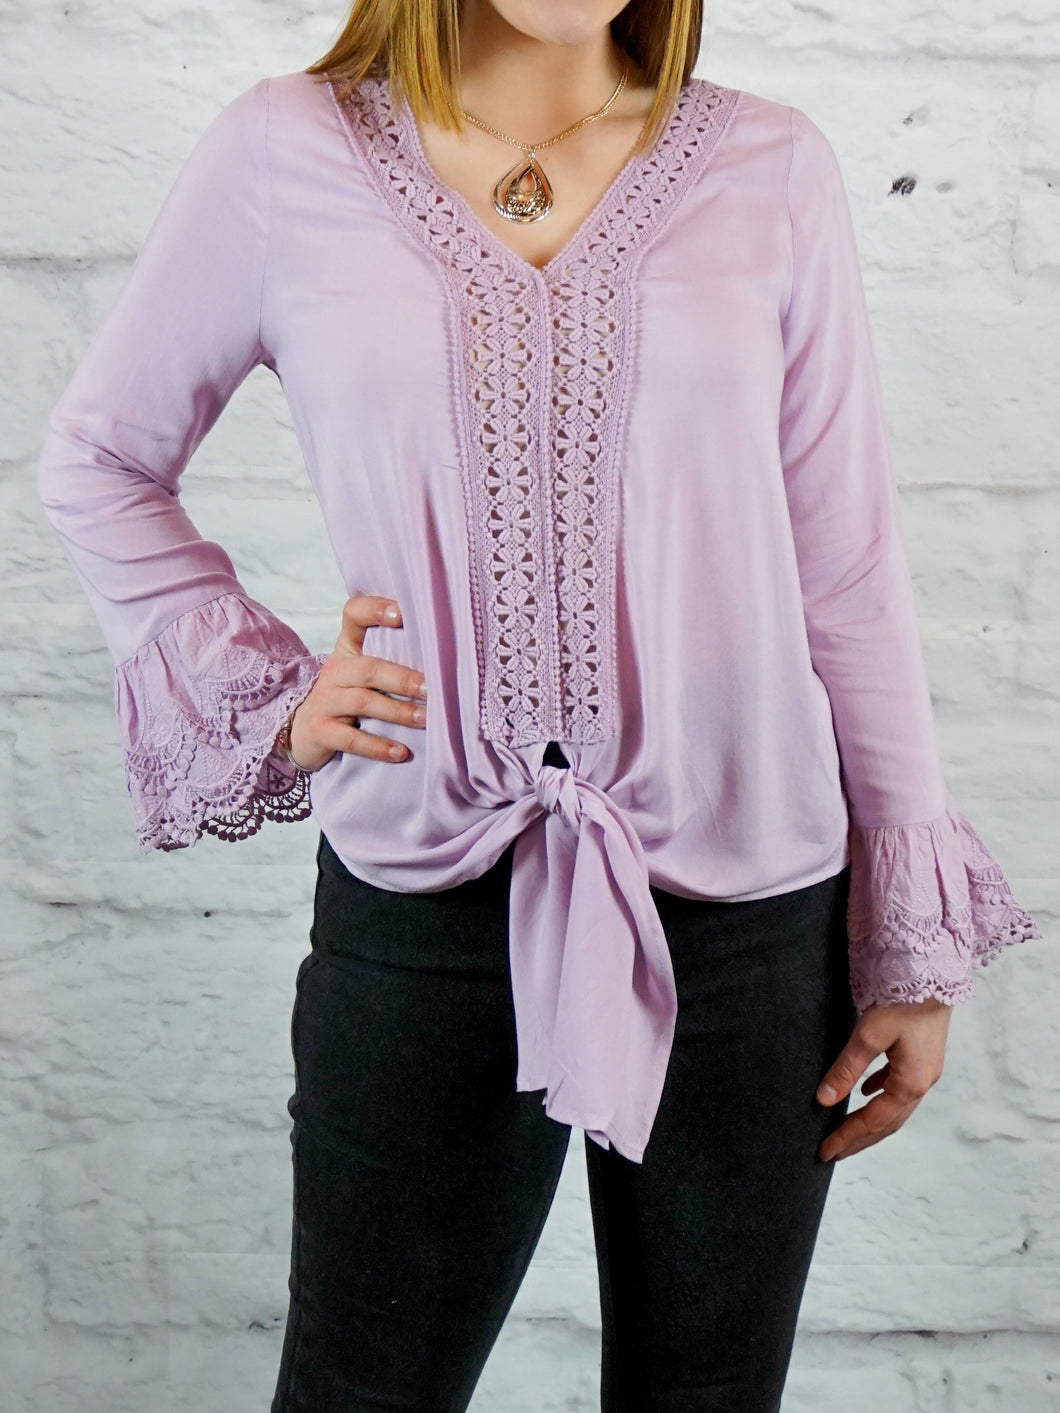 Top - The Ruby Lotus Boutique